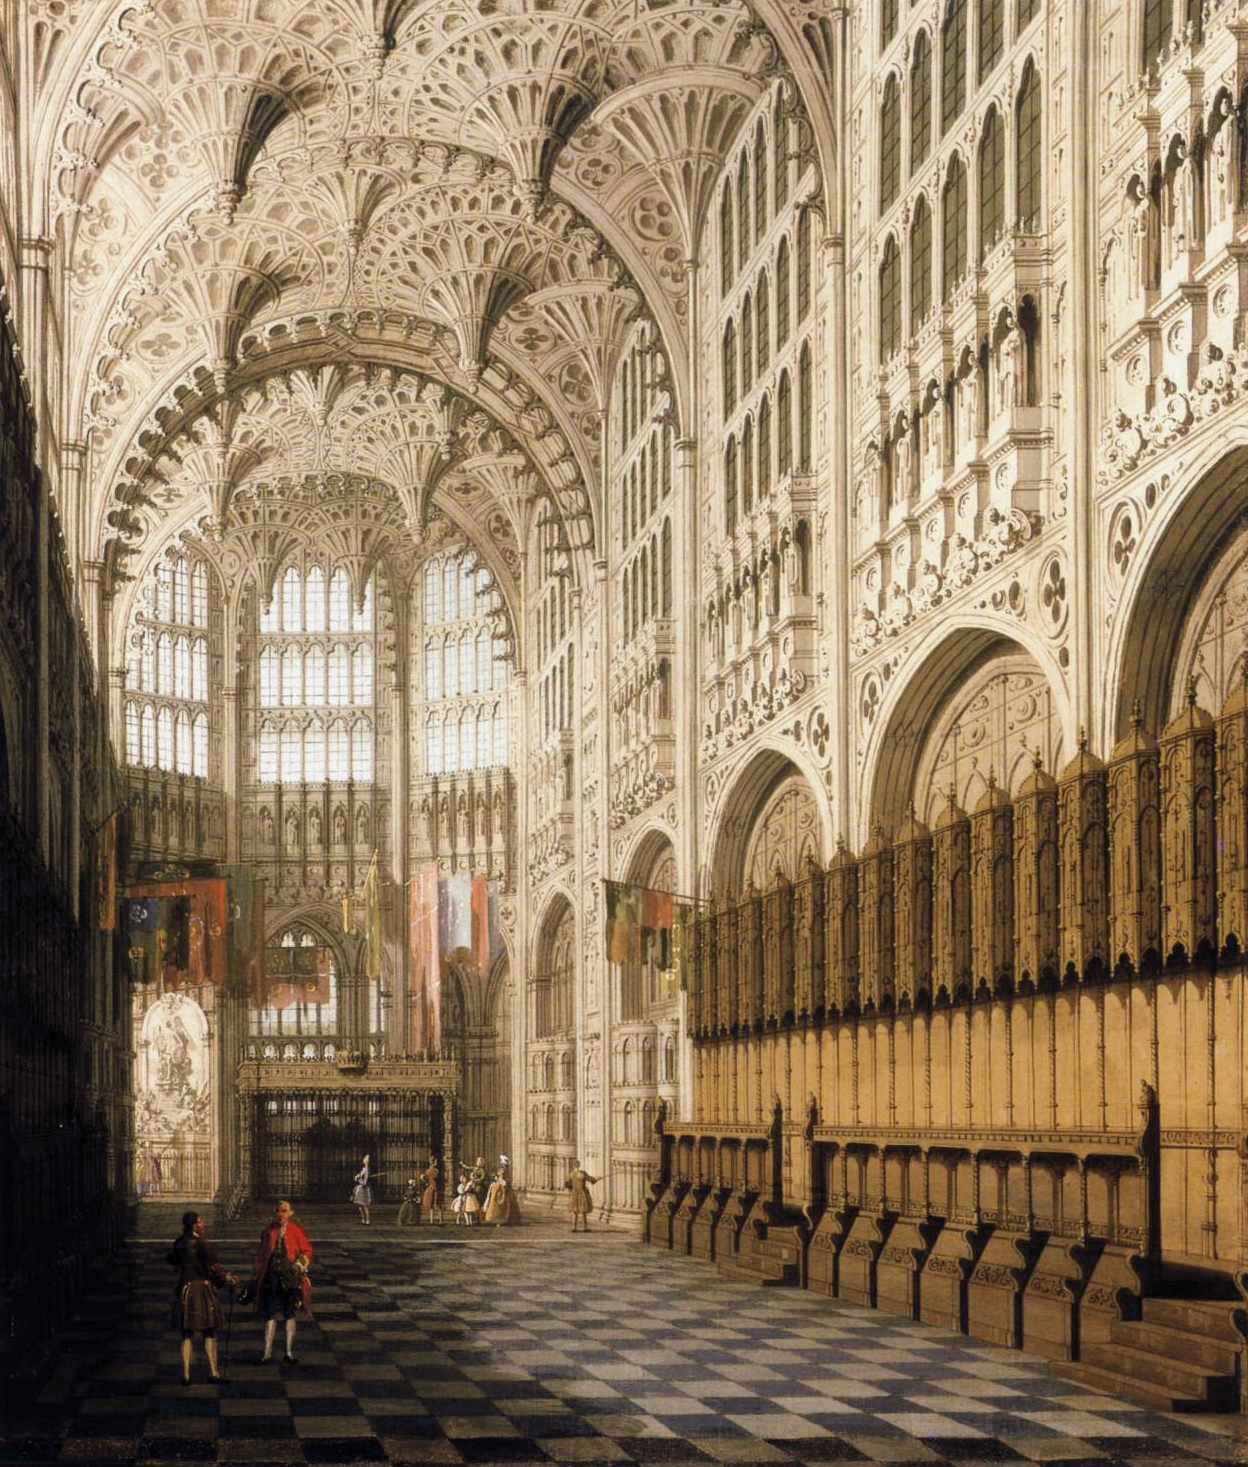 http://upload.wikimedia.org/wikipedia/commons/7/7f/Canaletto_-_The_Interior_of_Henry_VII%27s_Chapel_in_Westminster_Abbey.JPG